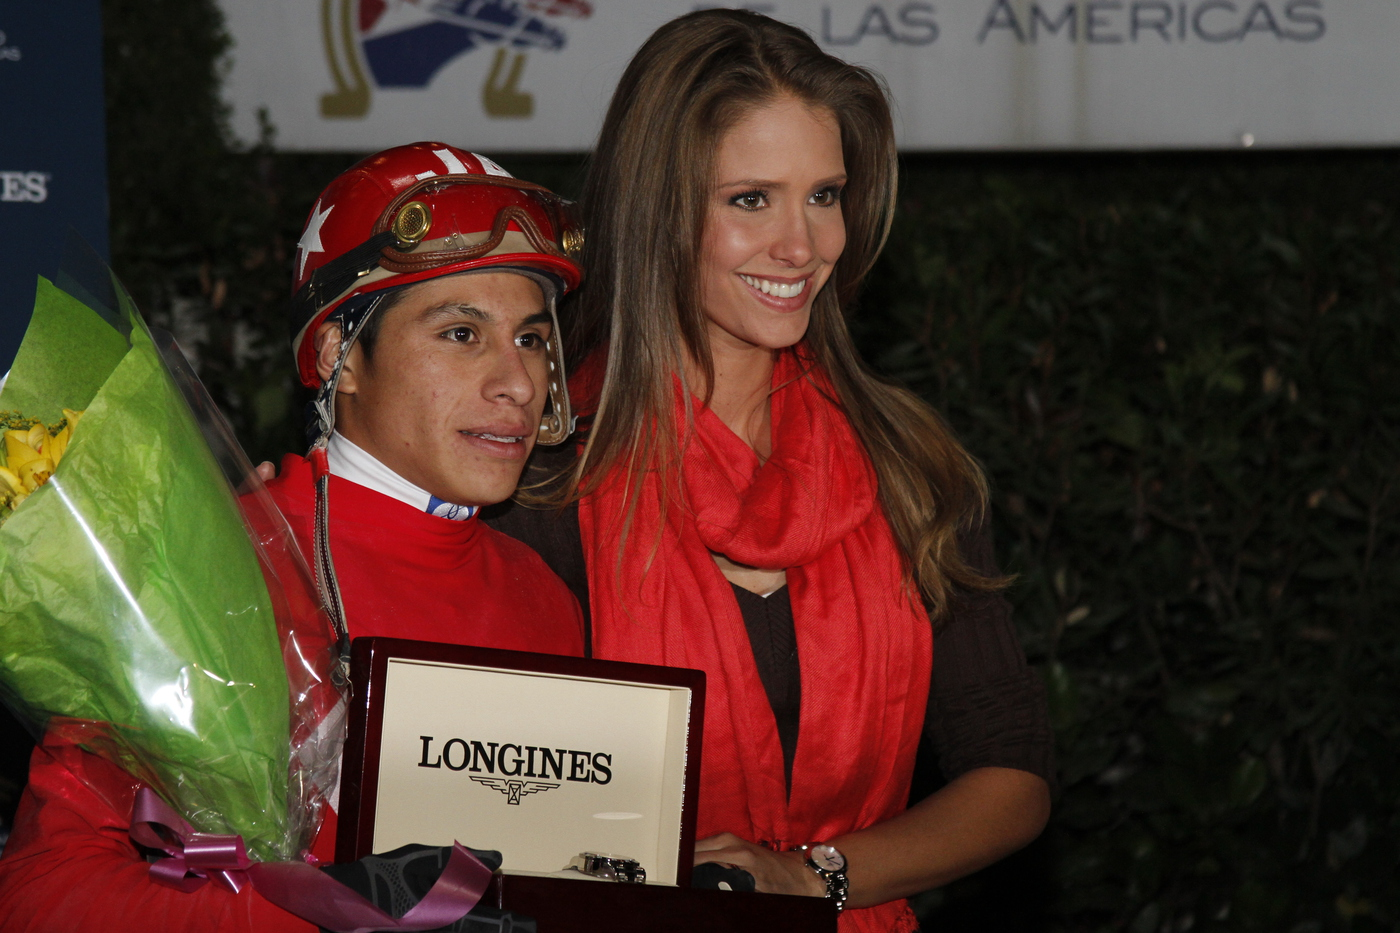 Longines Flat Racing Event: Jockey J.A. Ambrosio and Sarkozy win the Gran Premio Longines in Mexico 4